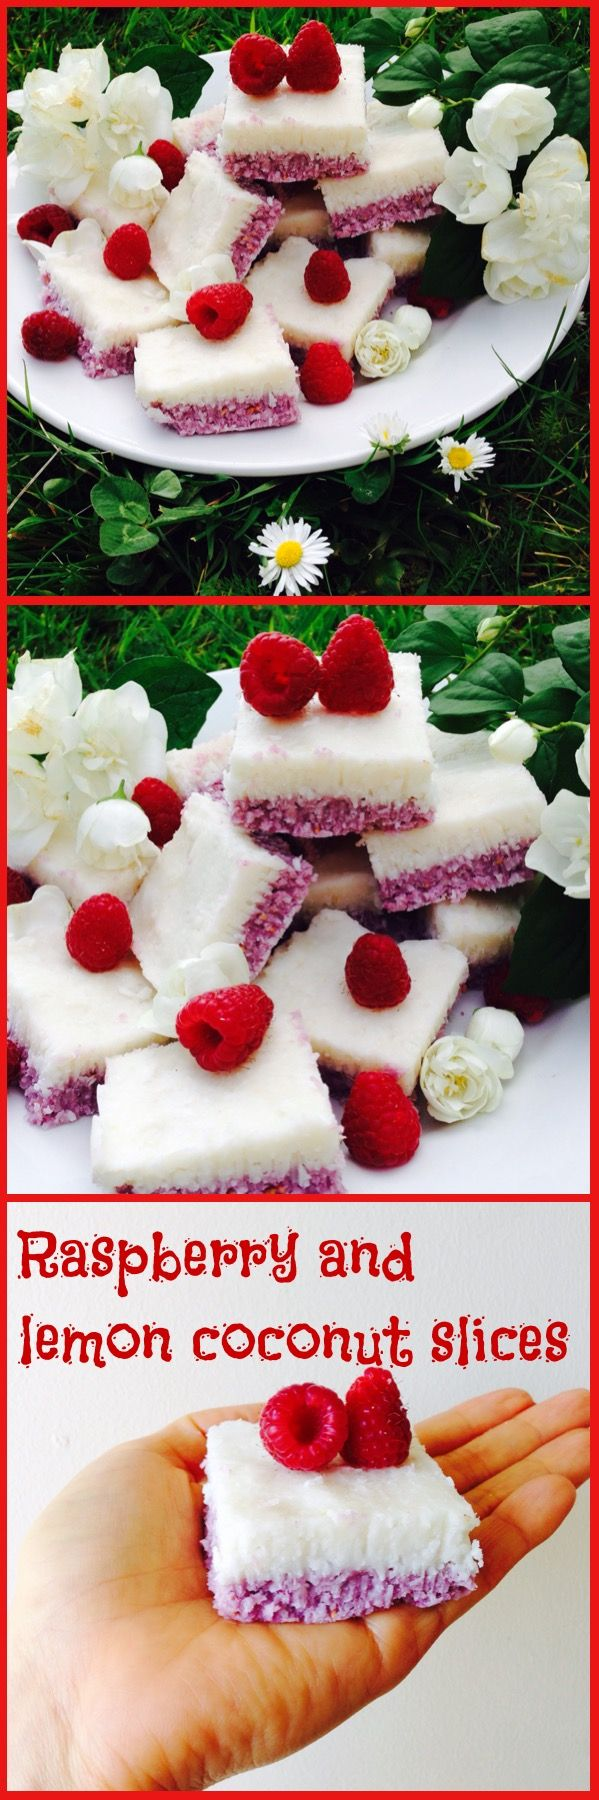 Clean eating dessert raspberry and lemon coconut slices. Rich, indulgent, gluten free, dairy free, refined sugar free, vegan, vegetarians and paleo friendly!